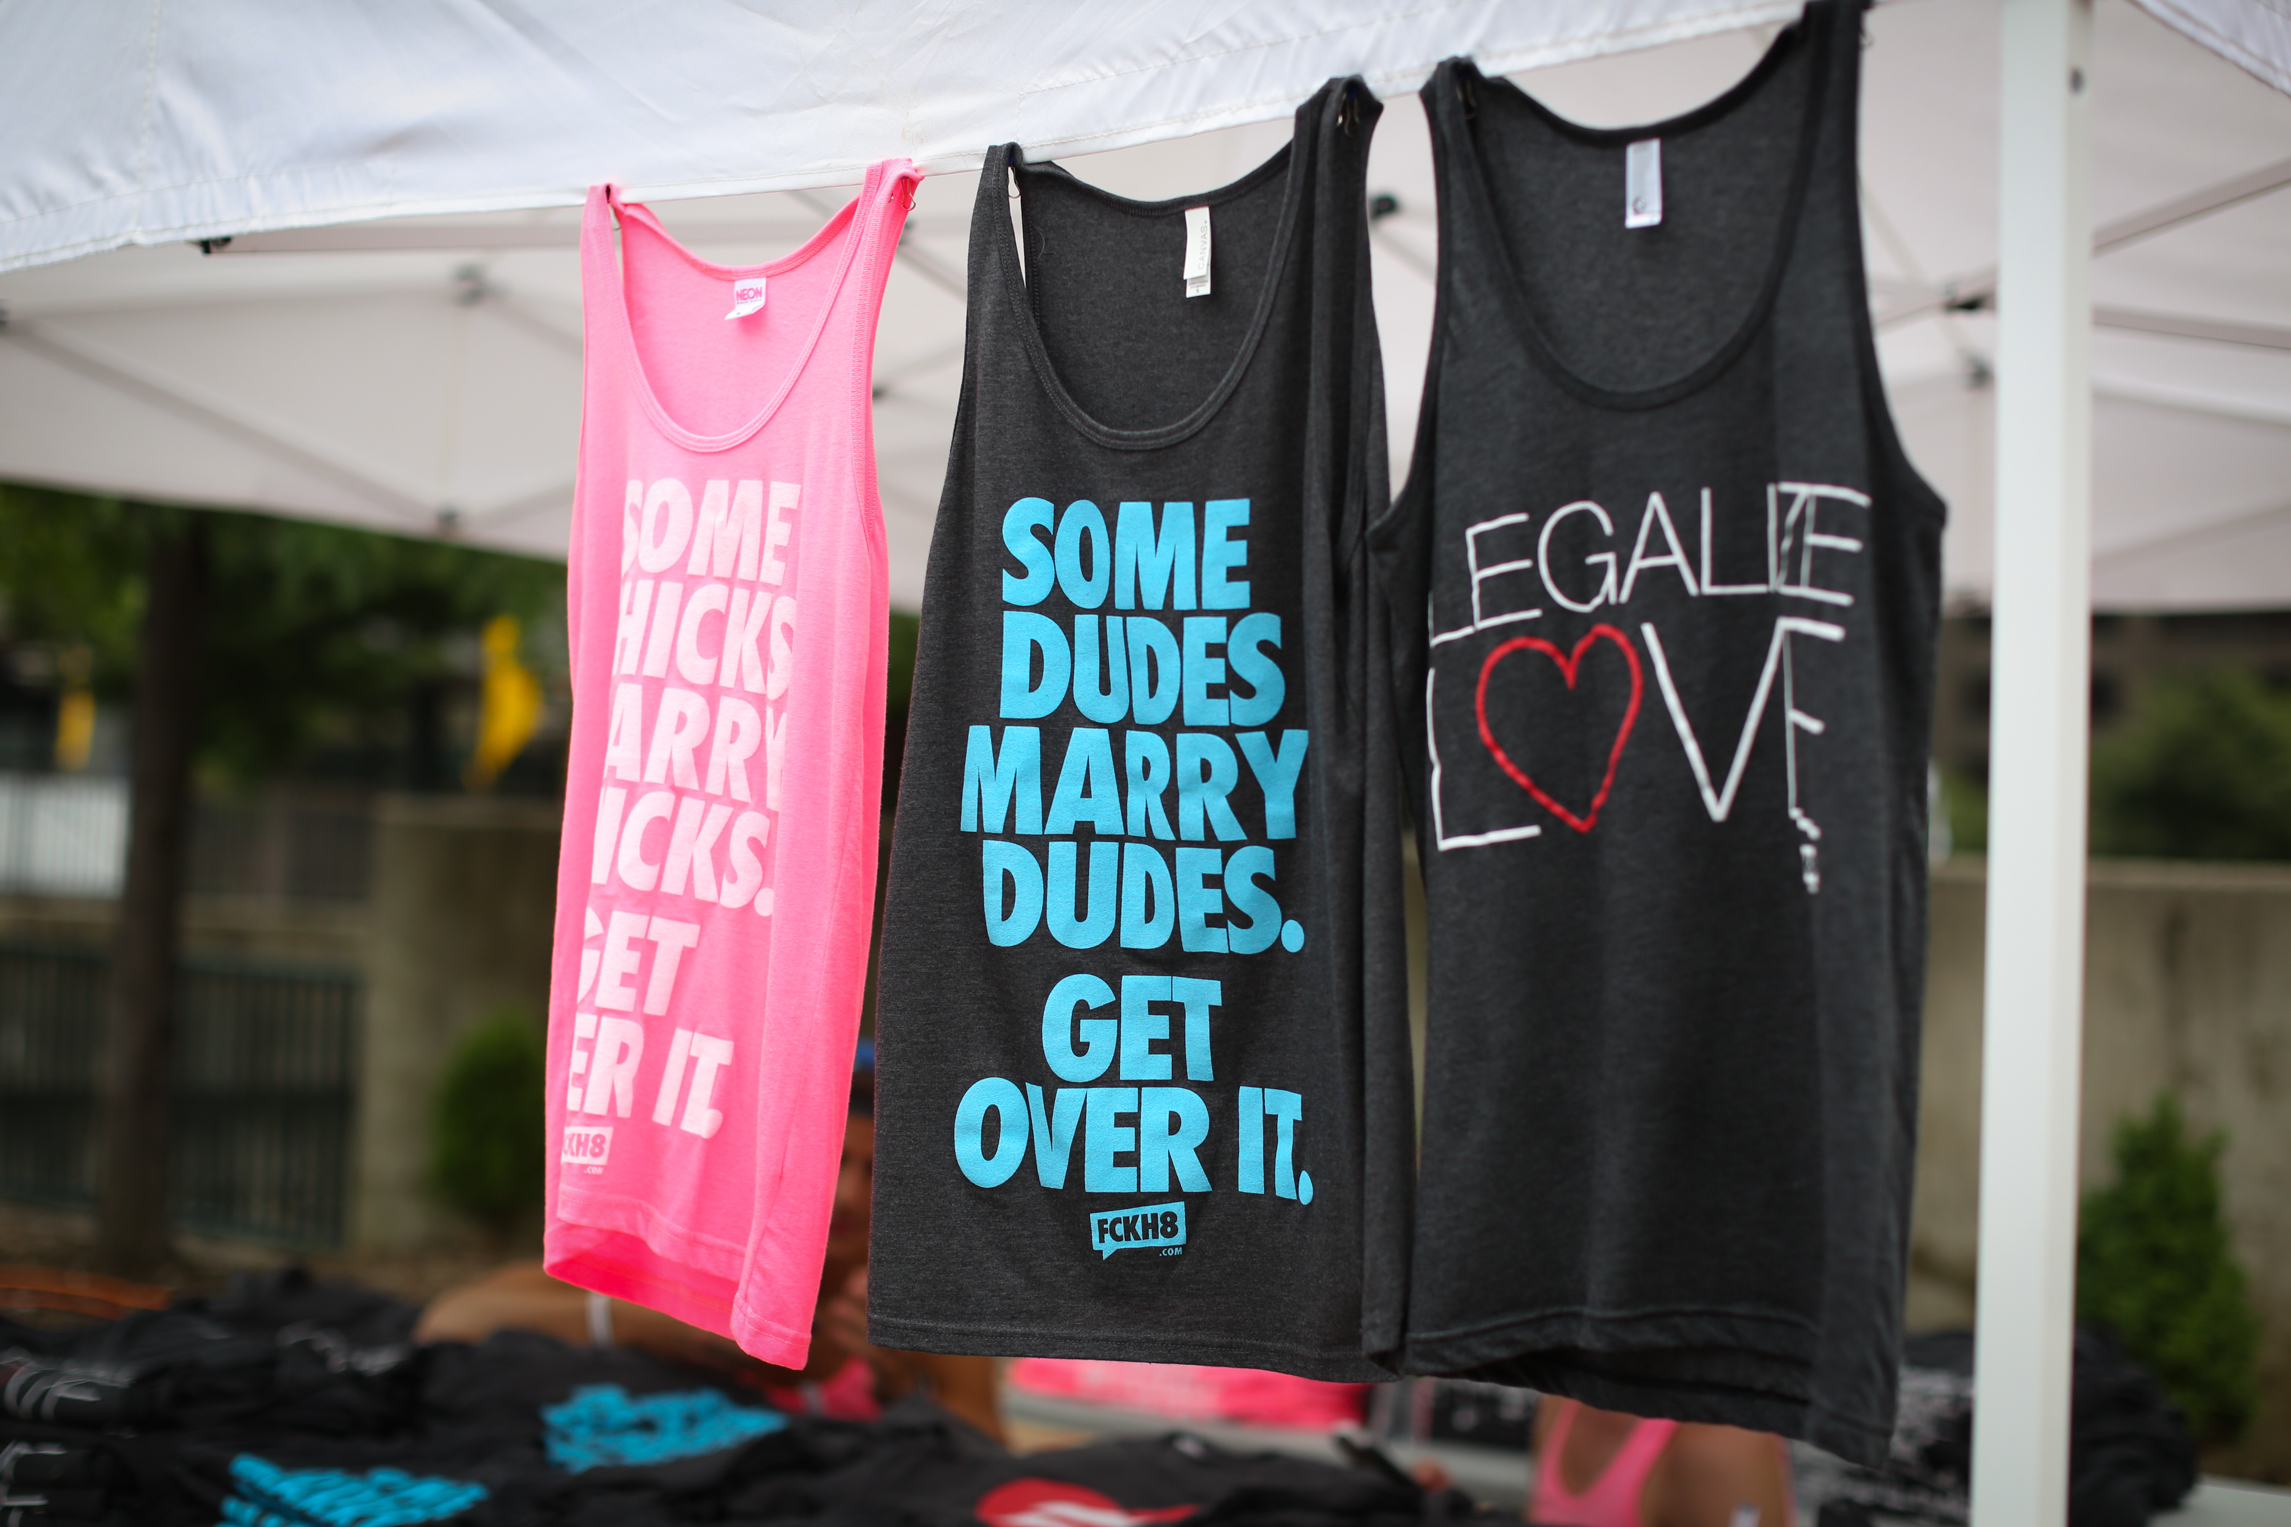 PRIDE W-FEVA 2015 EDITED CRYSTAL LUDWICK PHOTO (6 of 83).jpg